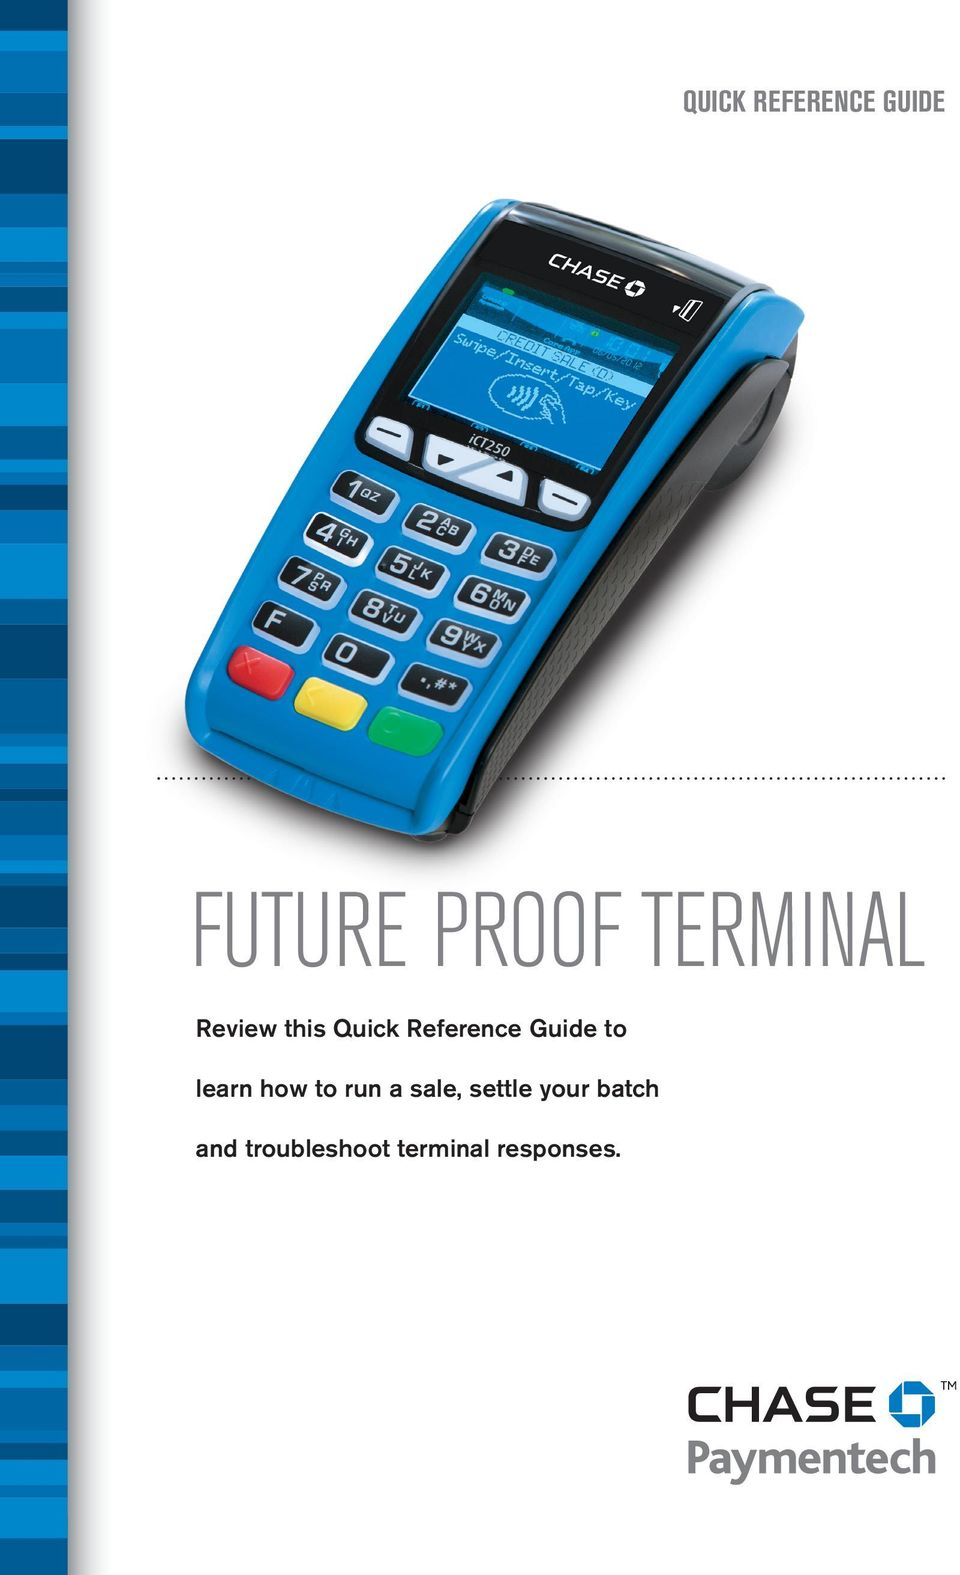 future proof terminal quick reference guide review this quick rh docplayer net Excel Quick Reference Guide Training Quick Reference Guides